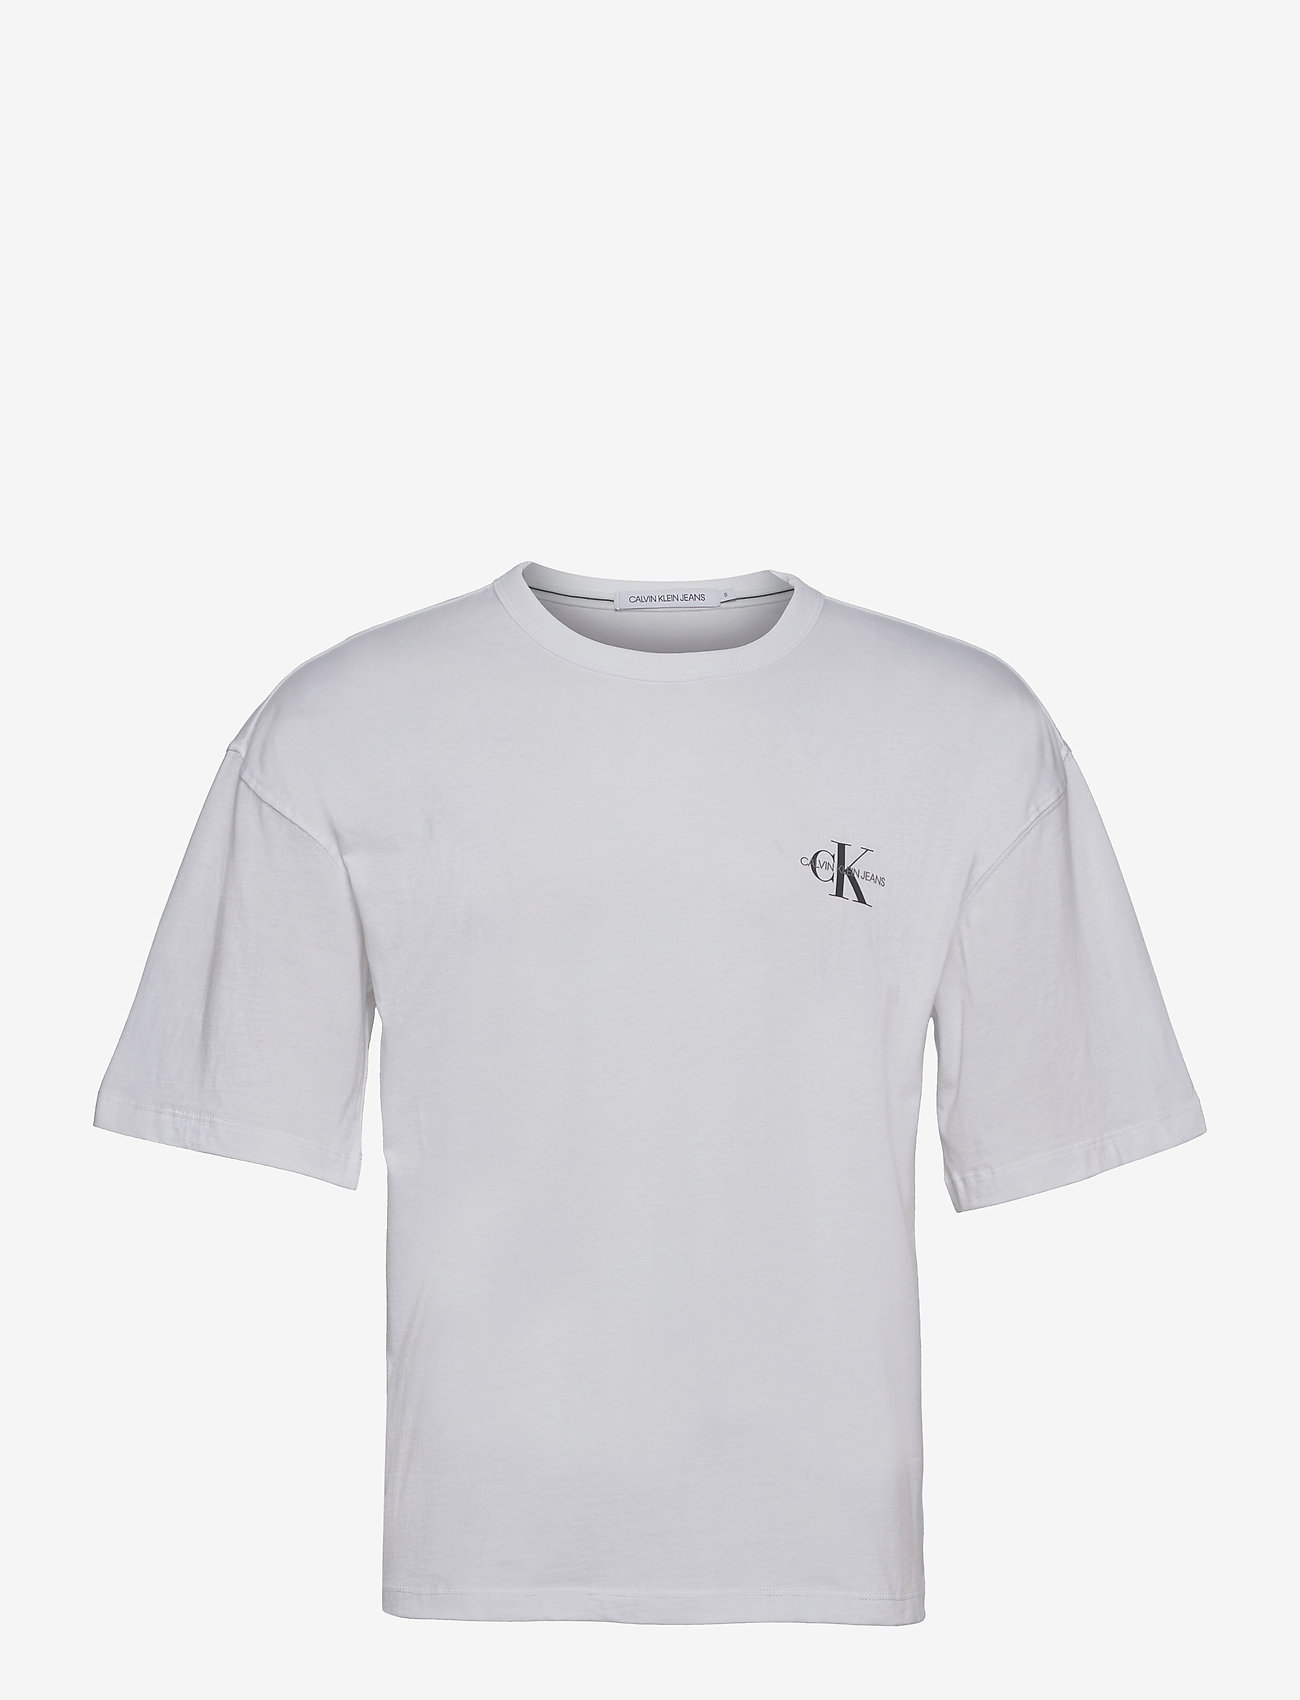 Calvin Klein Jeans - MONOGRAM MODERN RELAXED FIT TEE - t-shirts basiques - bright white - 0